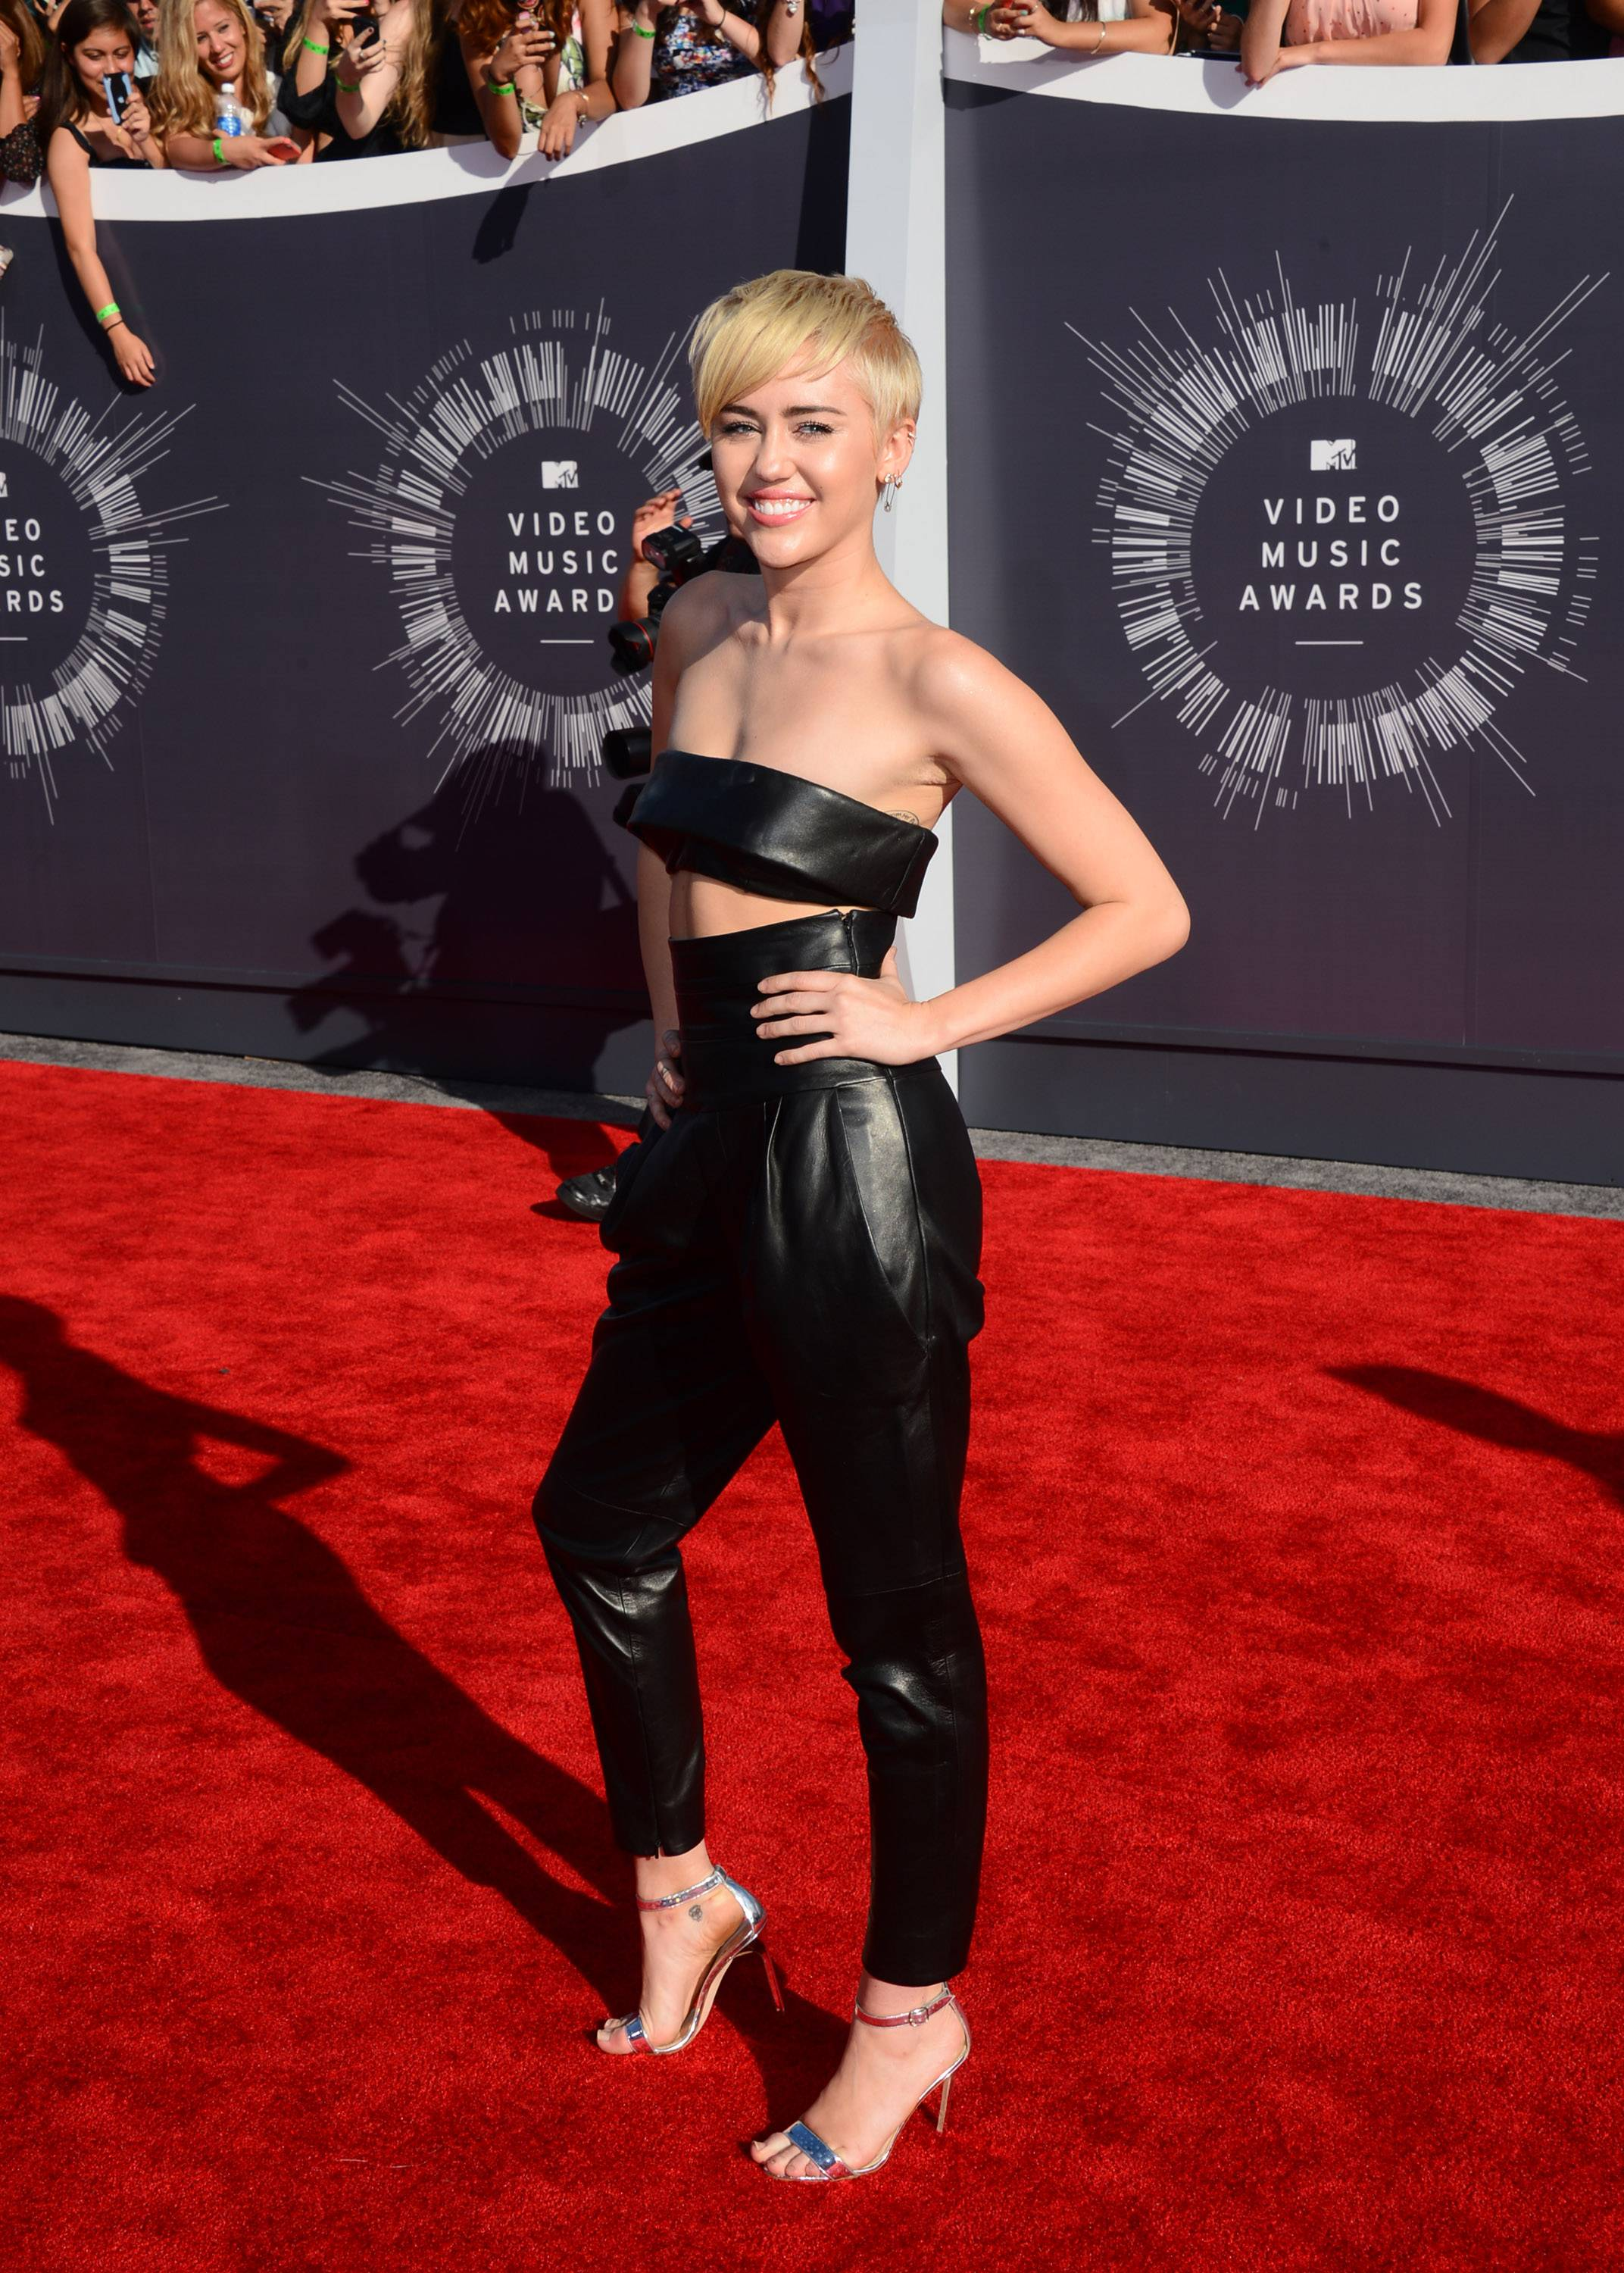 MEH: This outfit is downright subued for Miley Cyrus. Translation: boring.